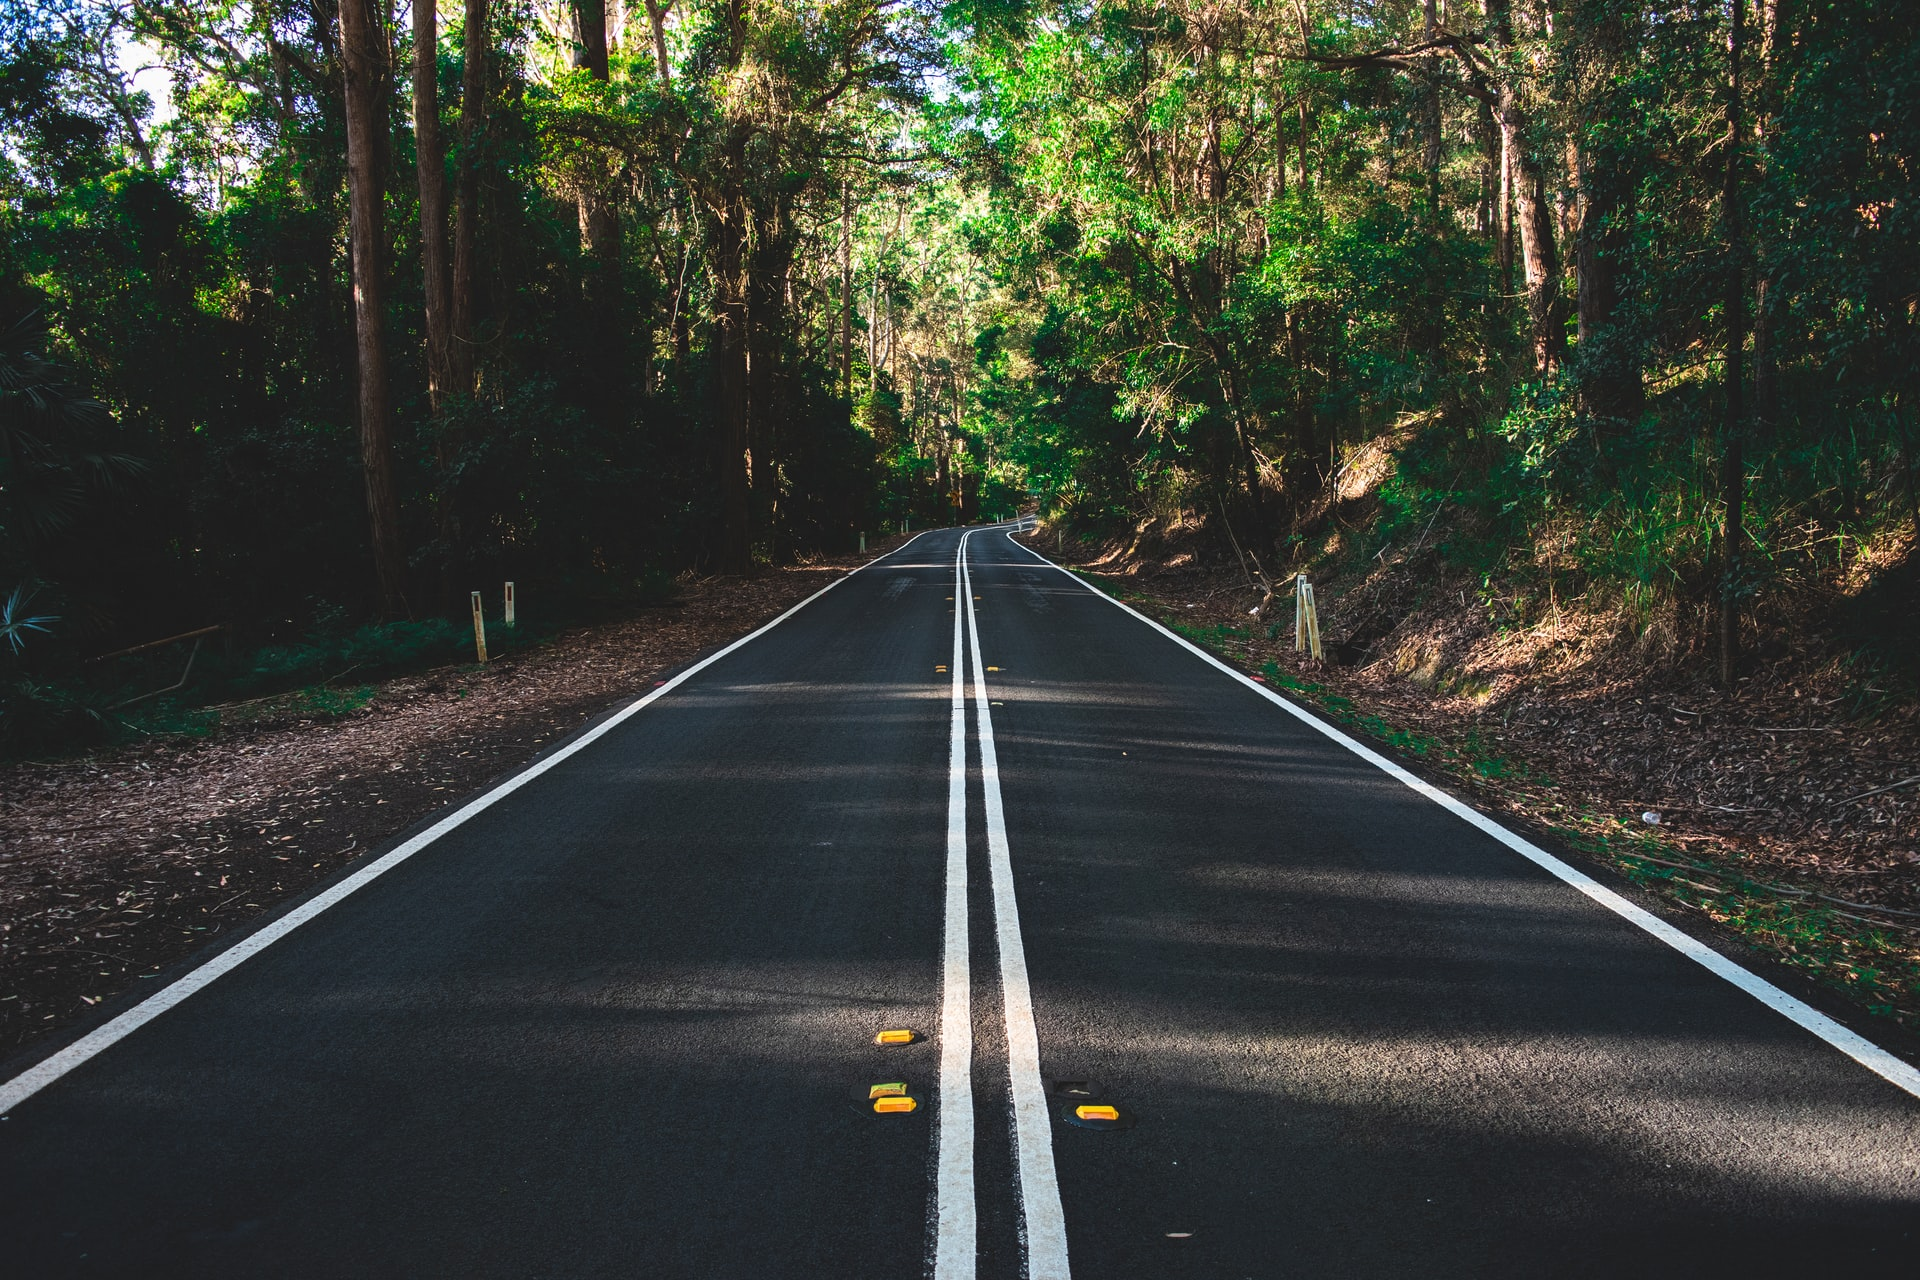 Austroads releases investment risk templates for road agencies